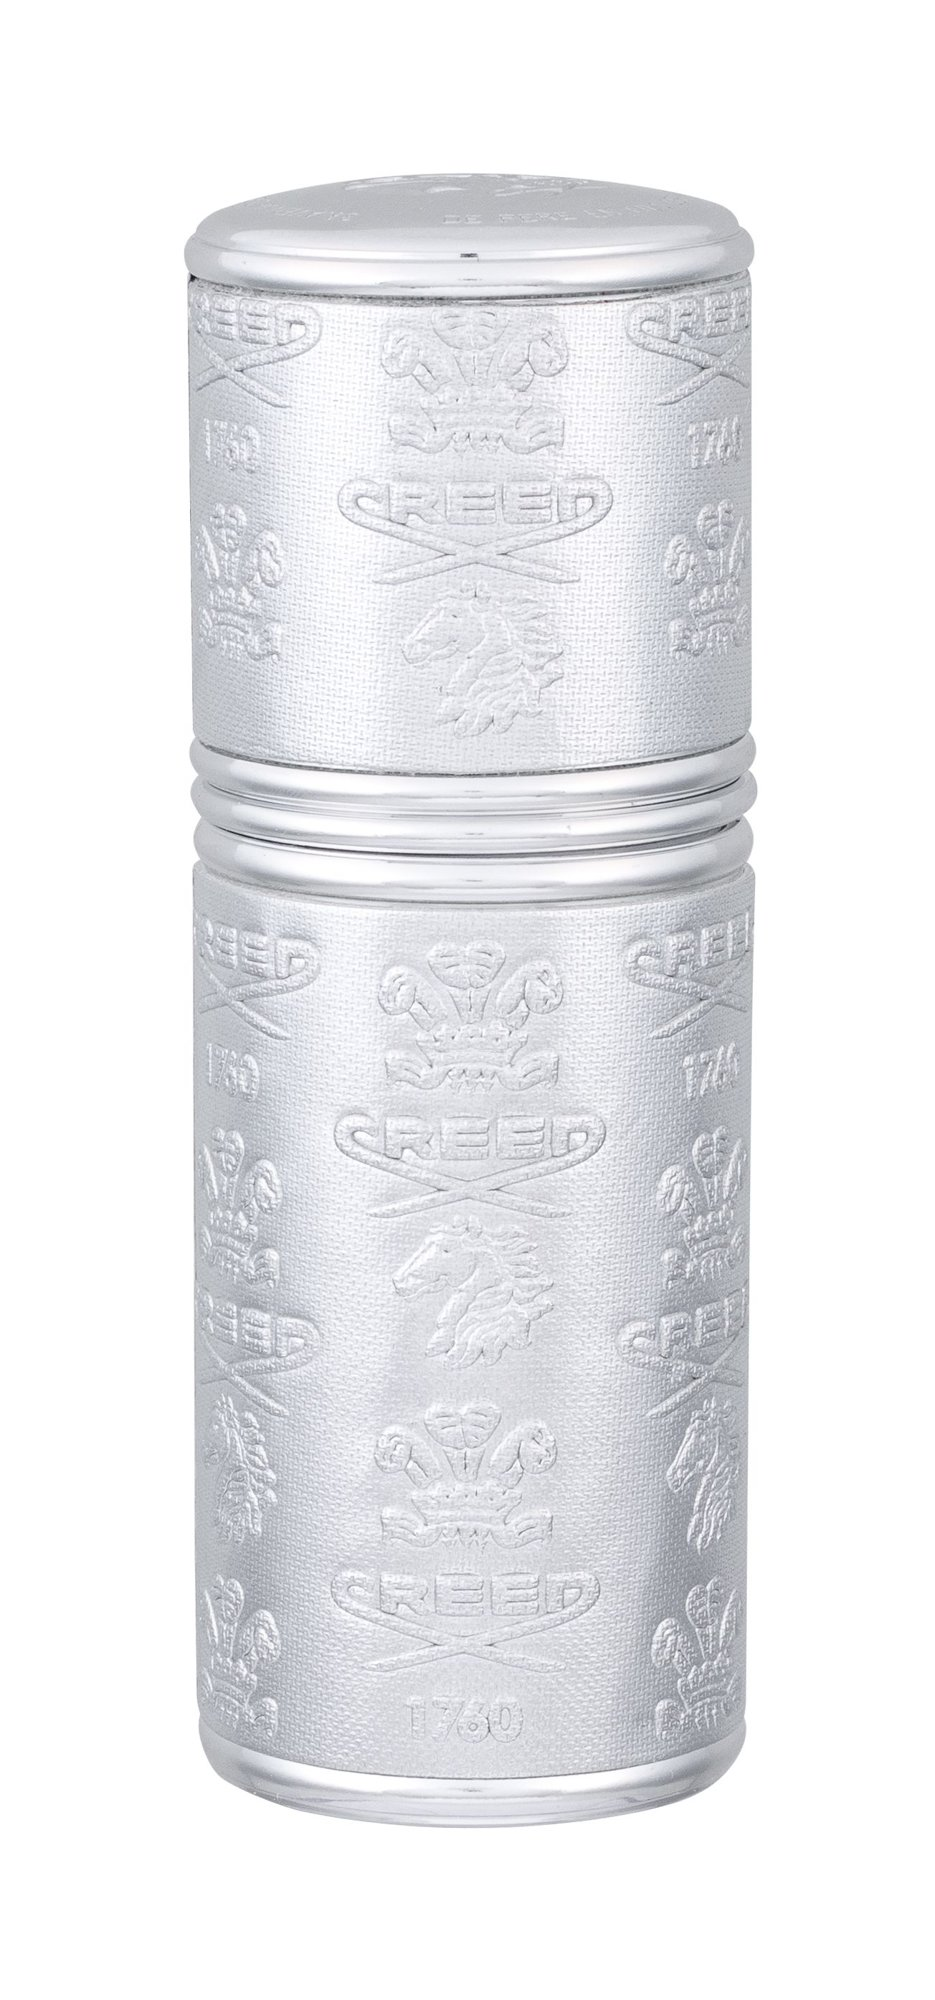 Creed Atomiser Refillable 50ml Silver/Silver